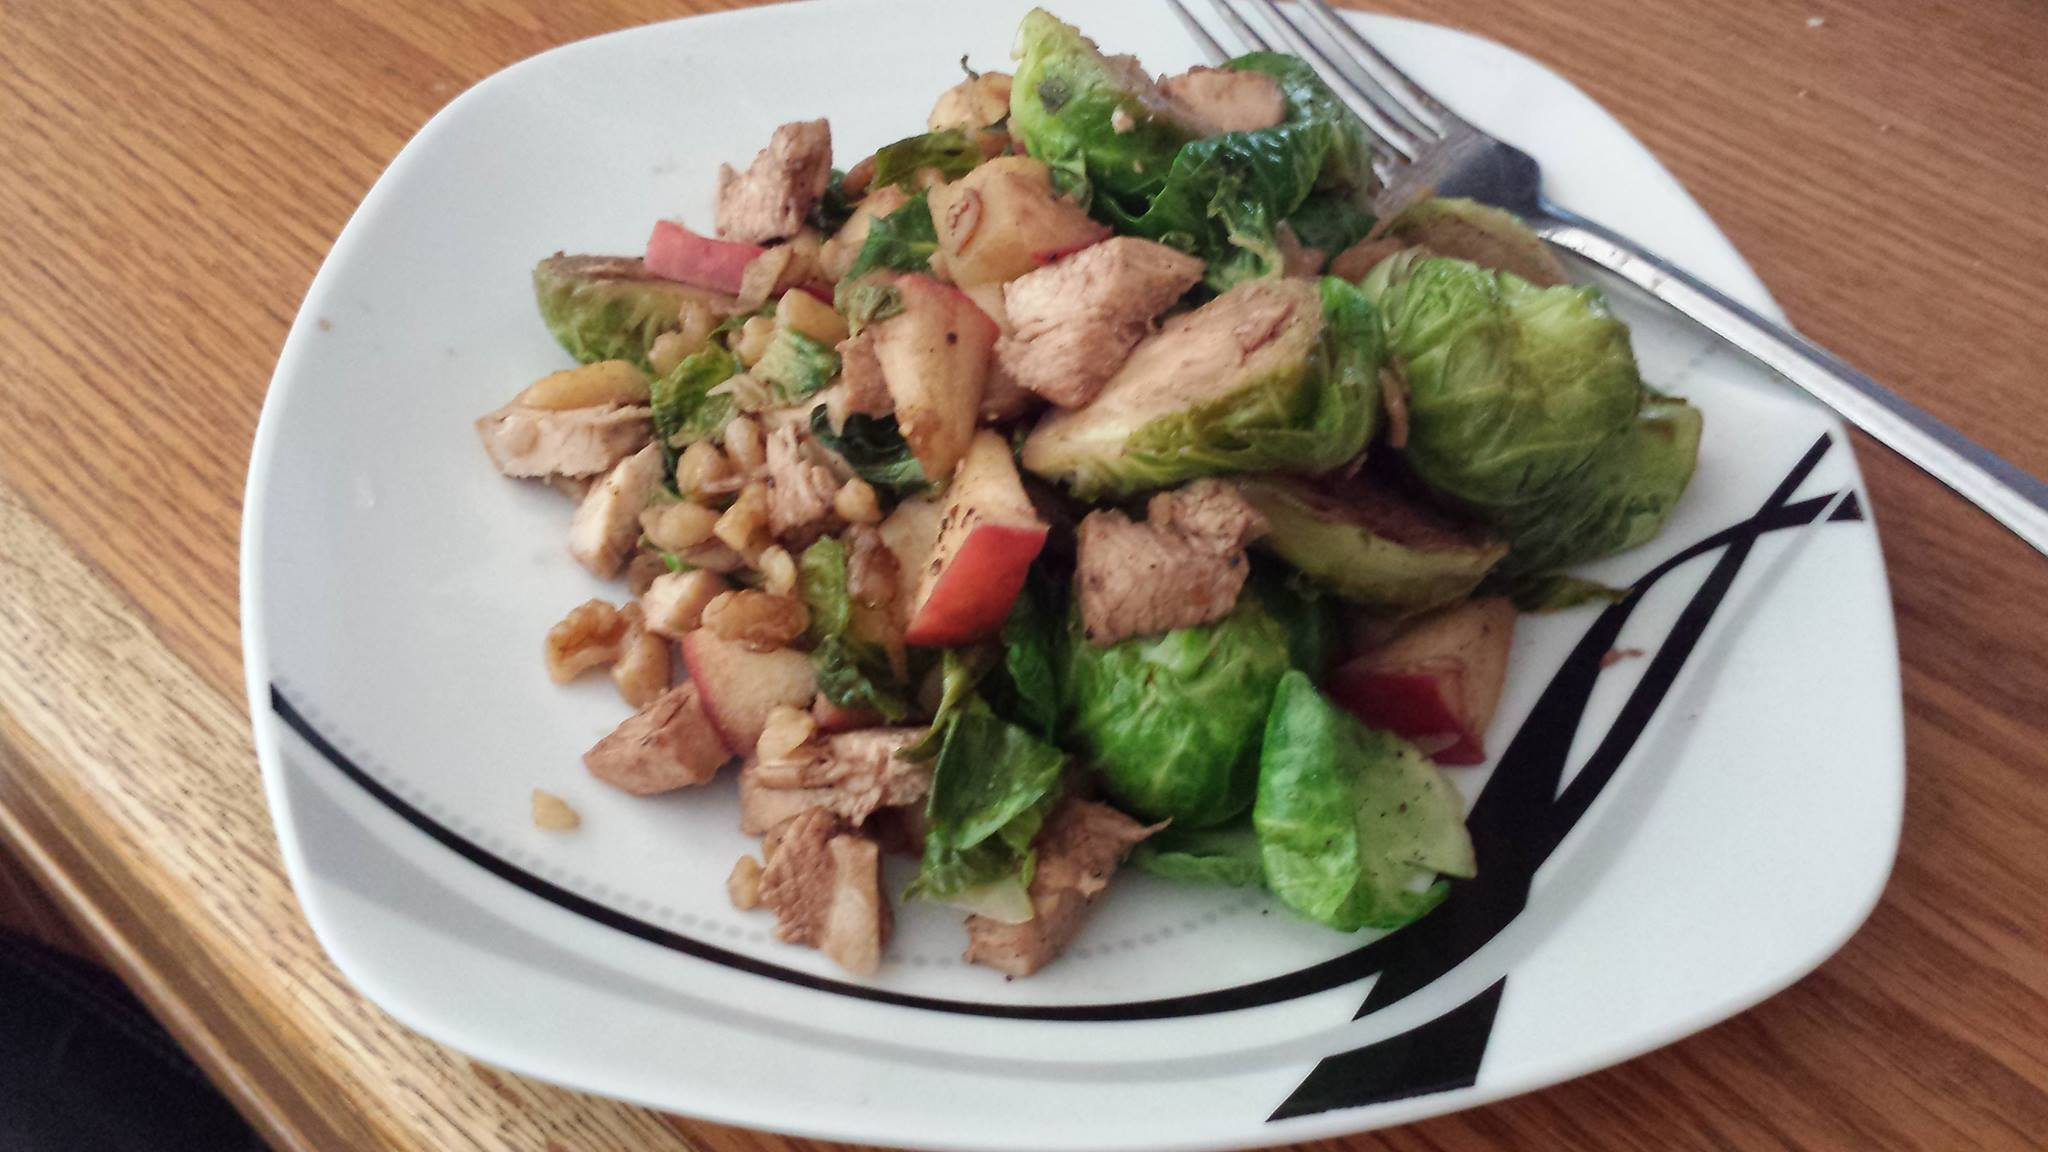 Brussels Sprouts, Apples, Walnuts, Cajun Chicken, Garlic, Balsamic Vinegar